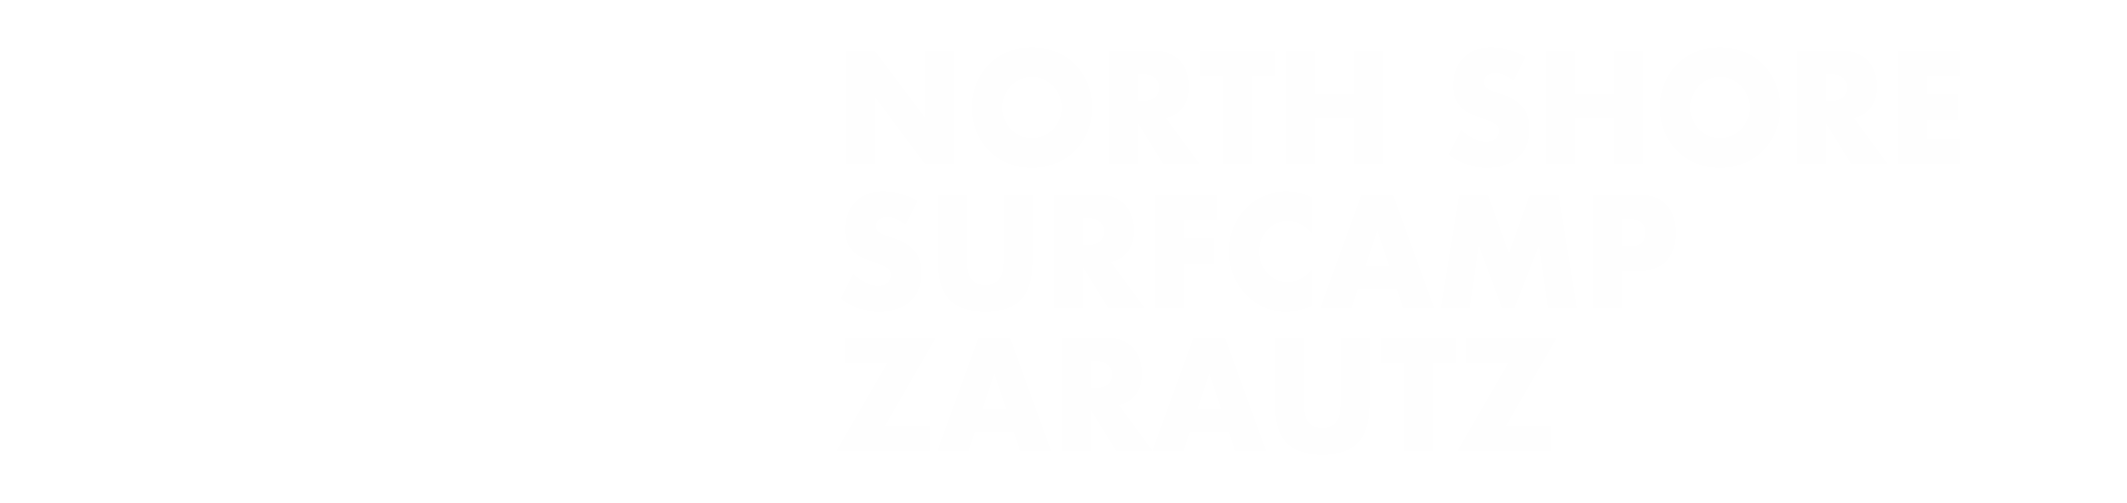 North Shore Zarautz